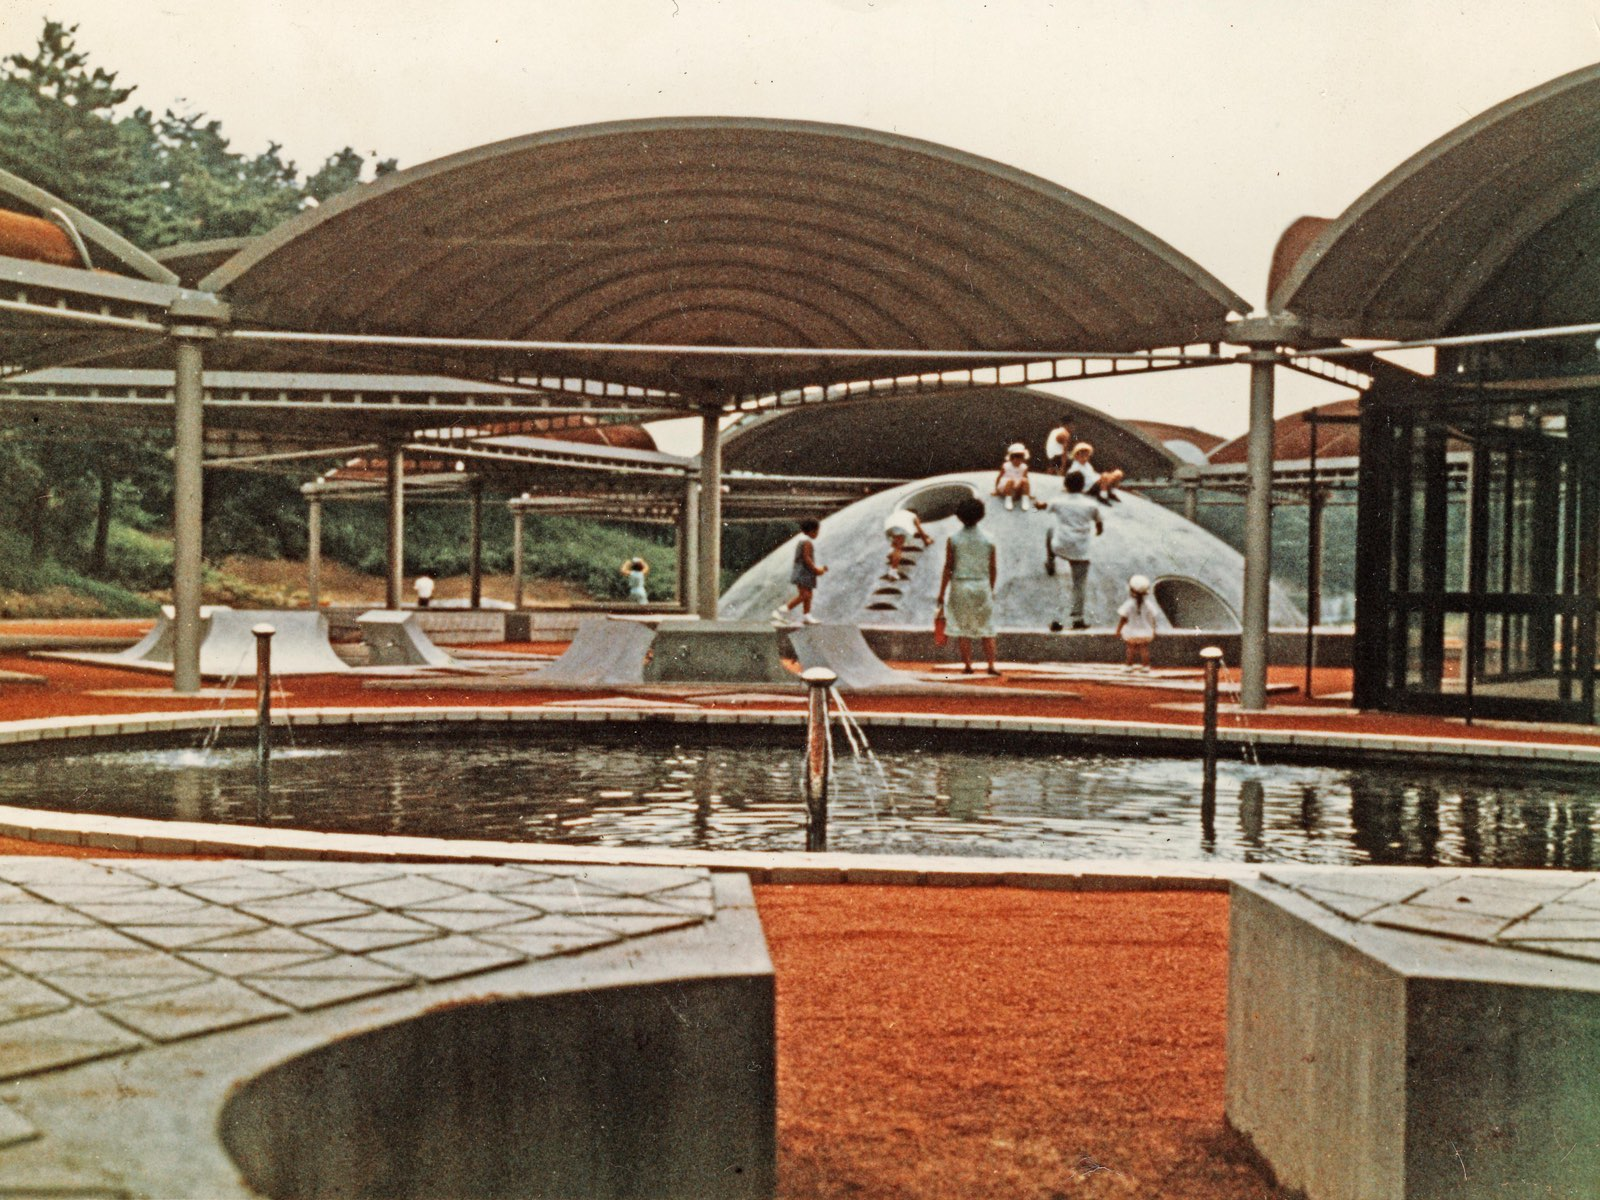 Kodomo No Kuni Playground, 1965-1966.